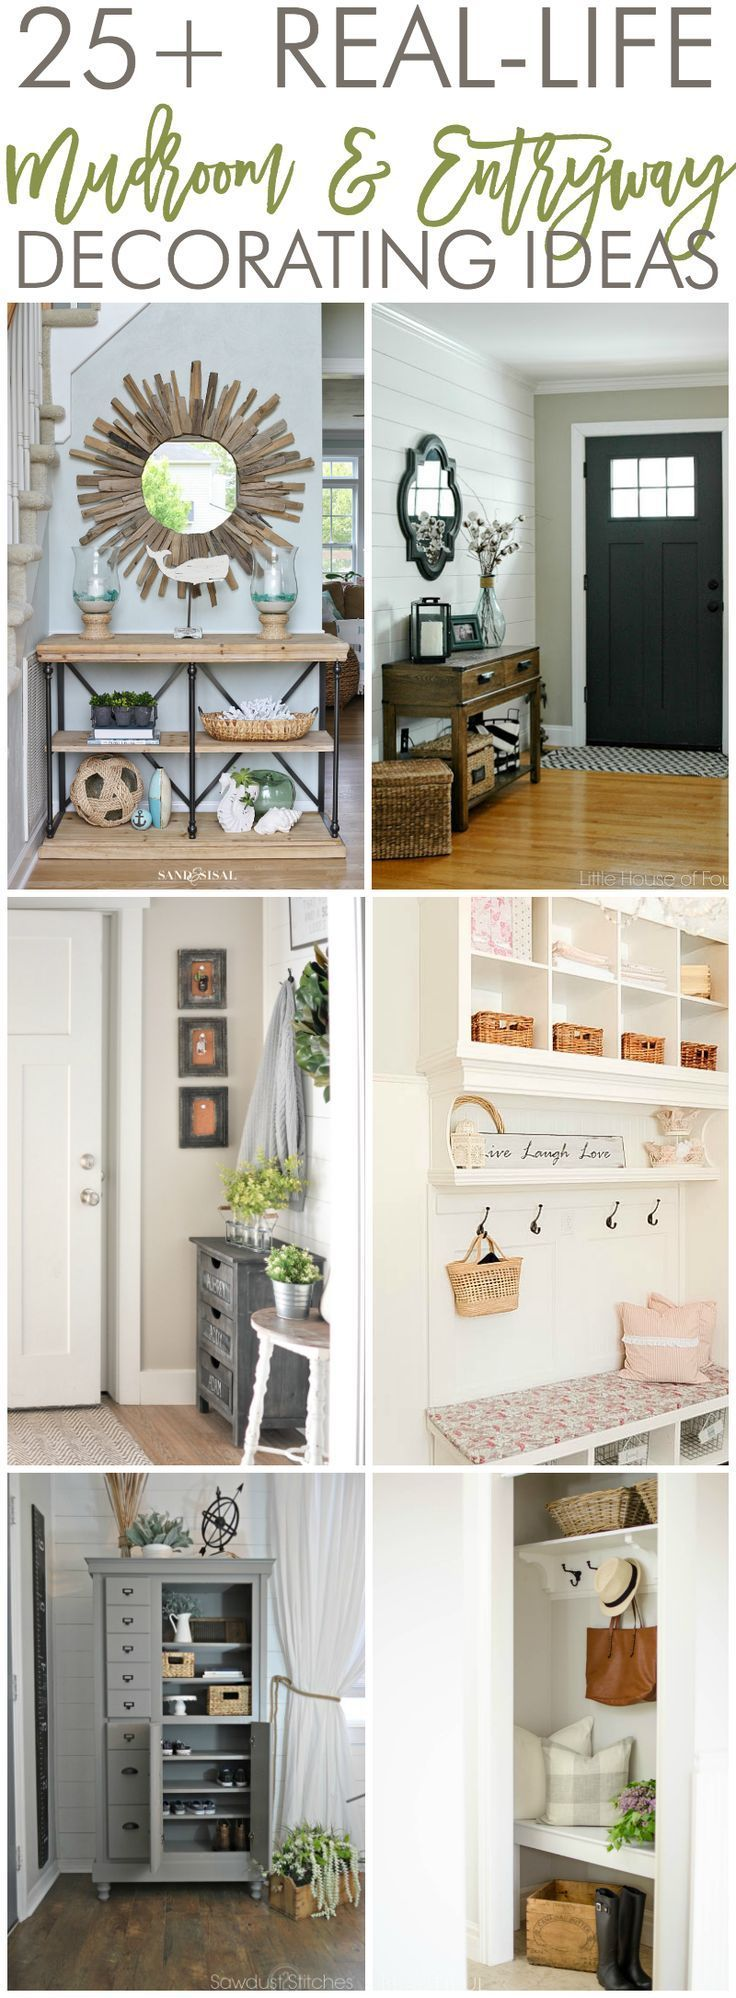 109 best Entryway Decorating Ideas images on Pinterest | Decorating ...